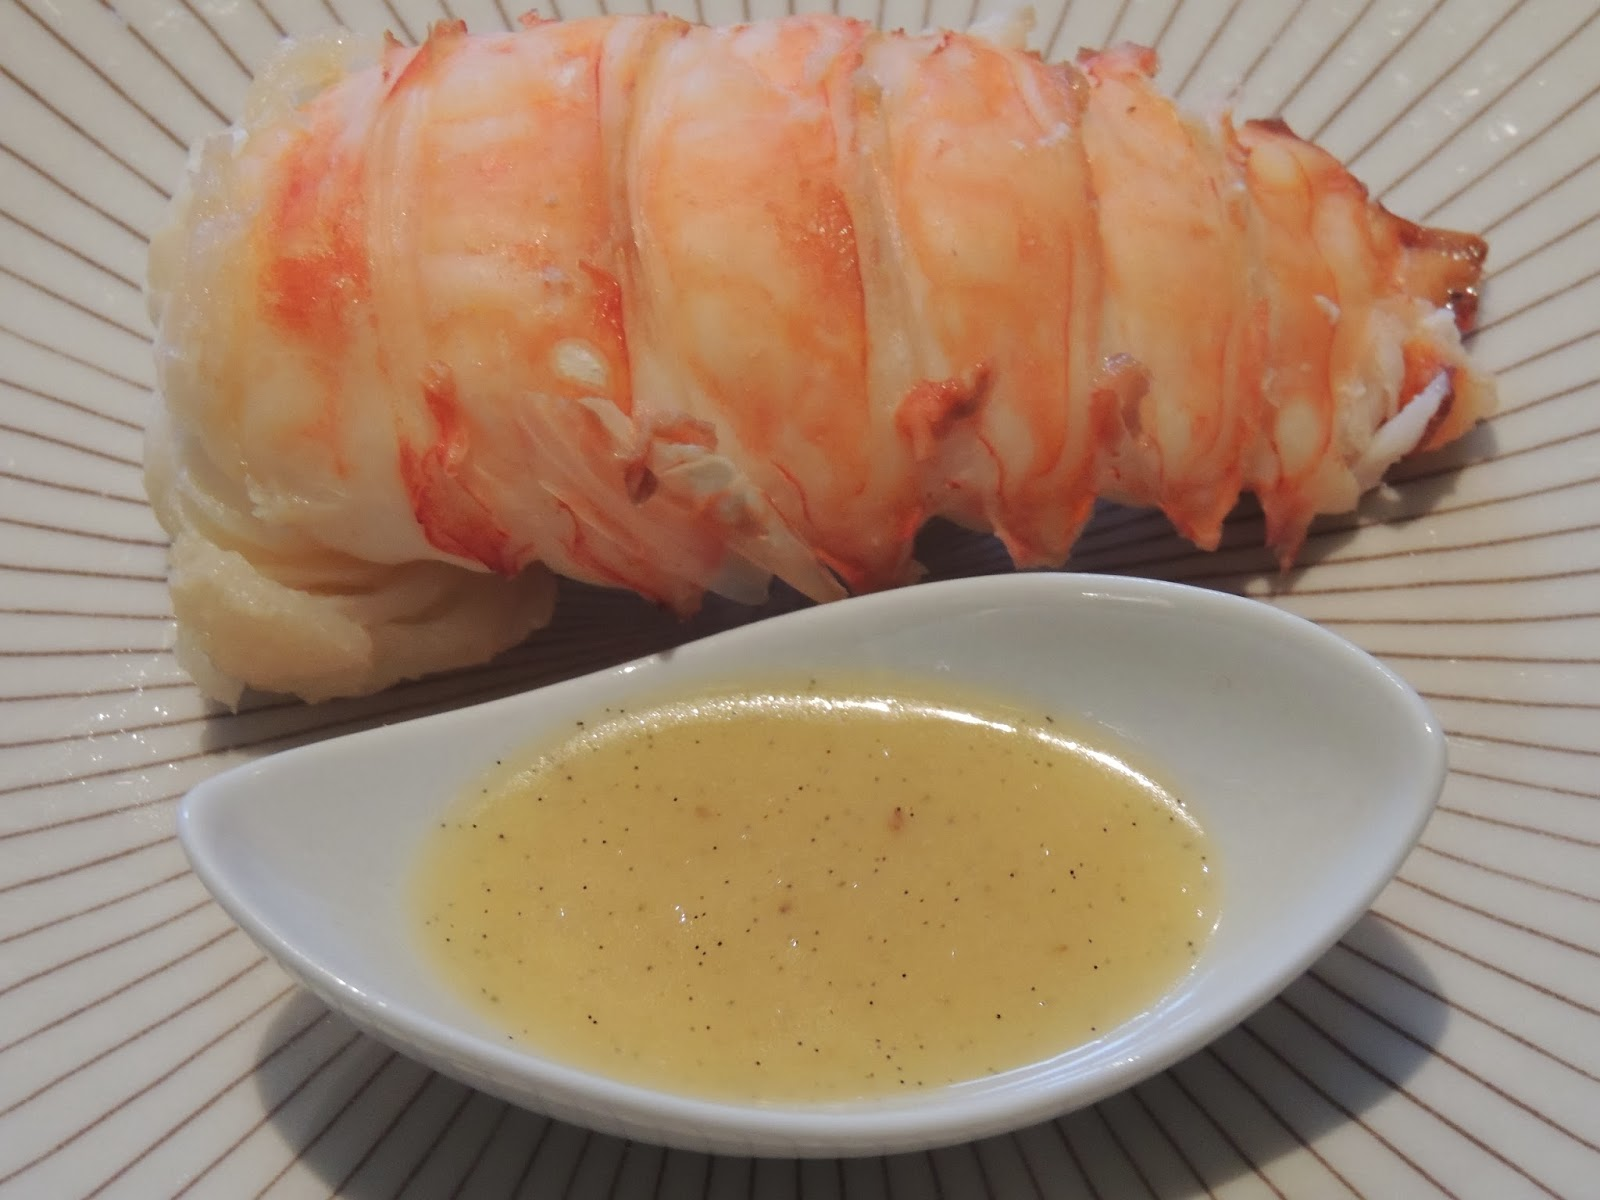 Midi cuisine queue de langouste au beurre vanill for Cuisine queue de langouste